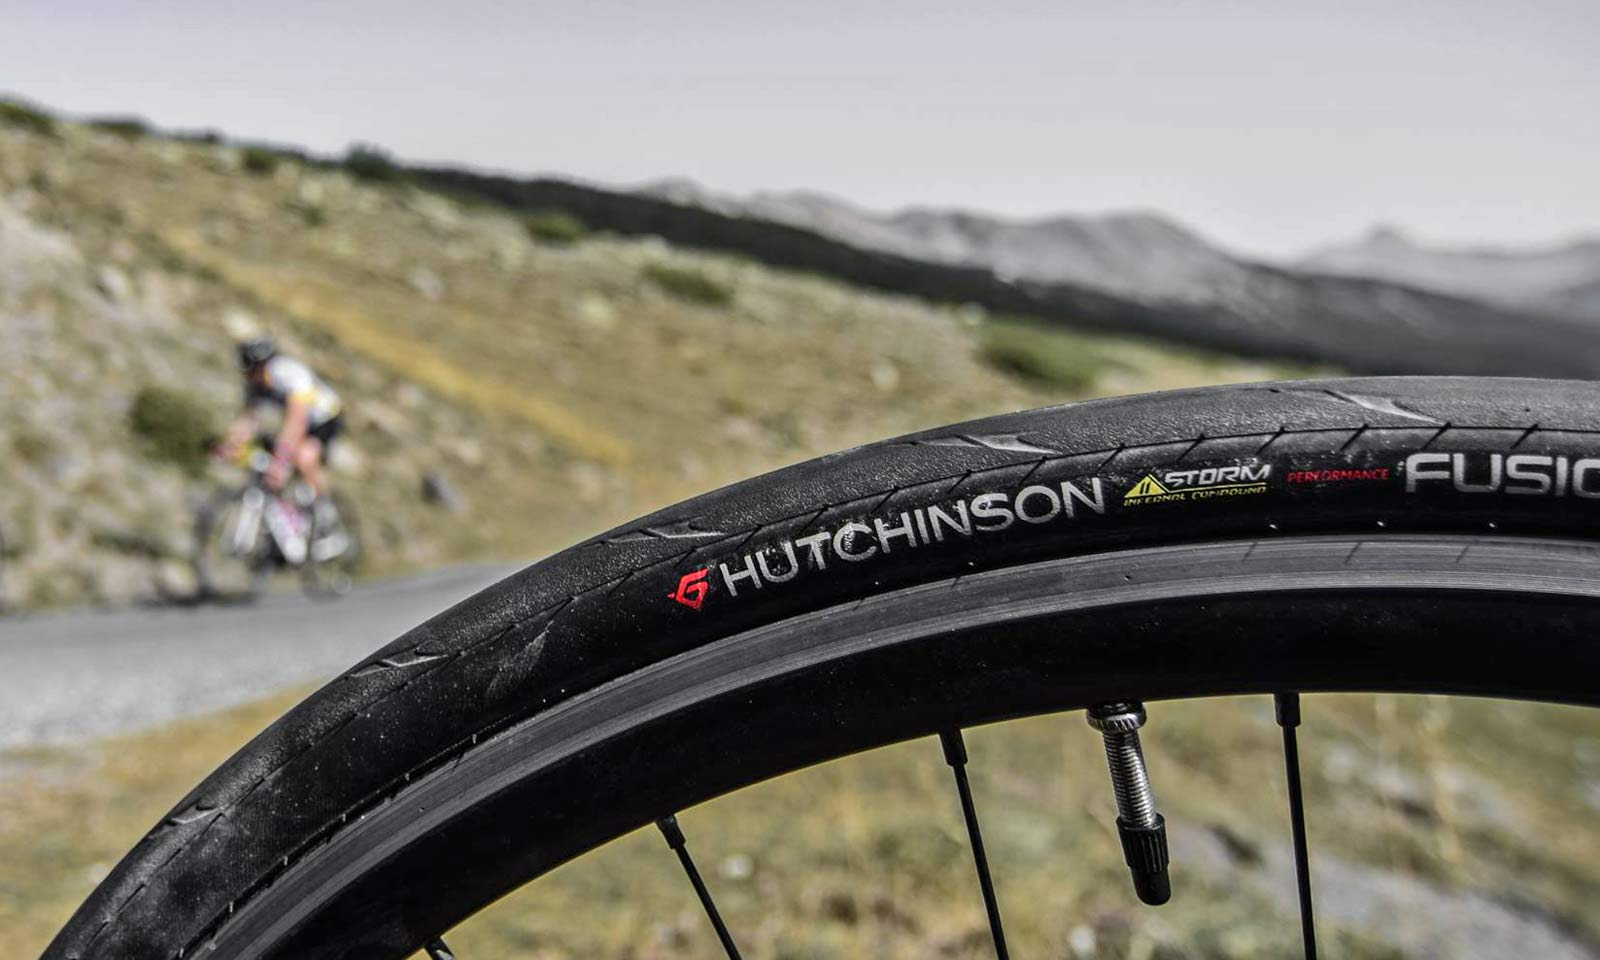 Hutchinson 2018 Fusion 5 Performance 11 STORM tubeless ready 700 X 25 2 tires